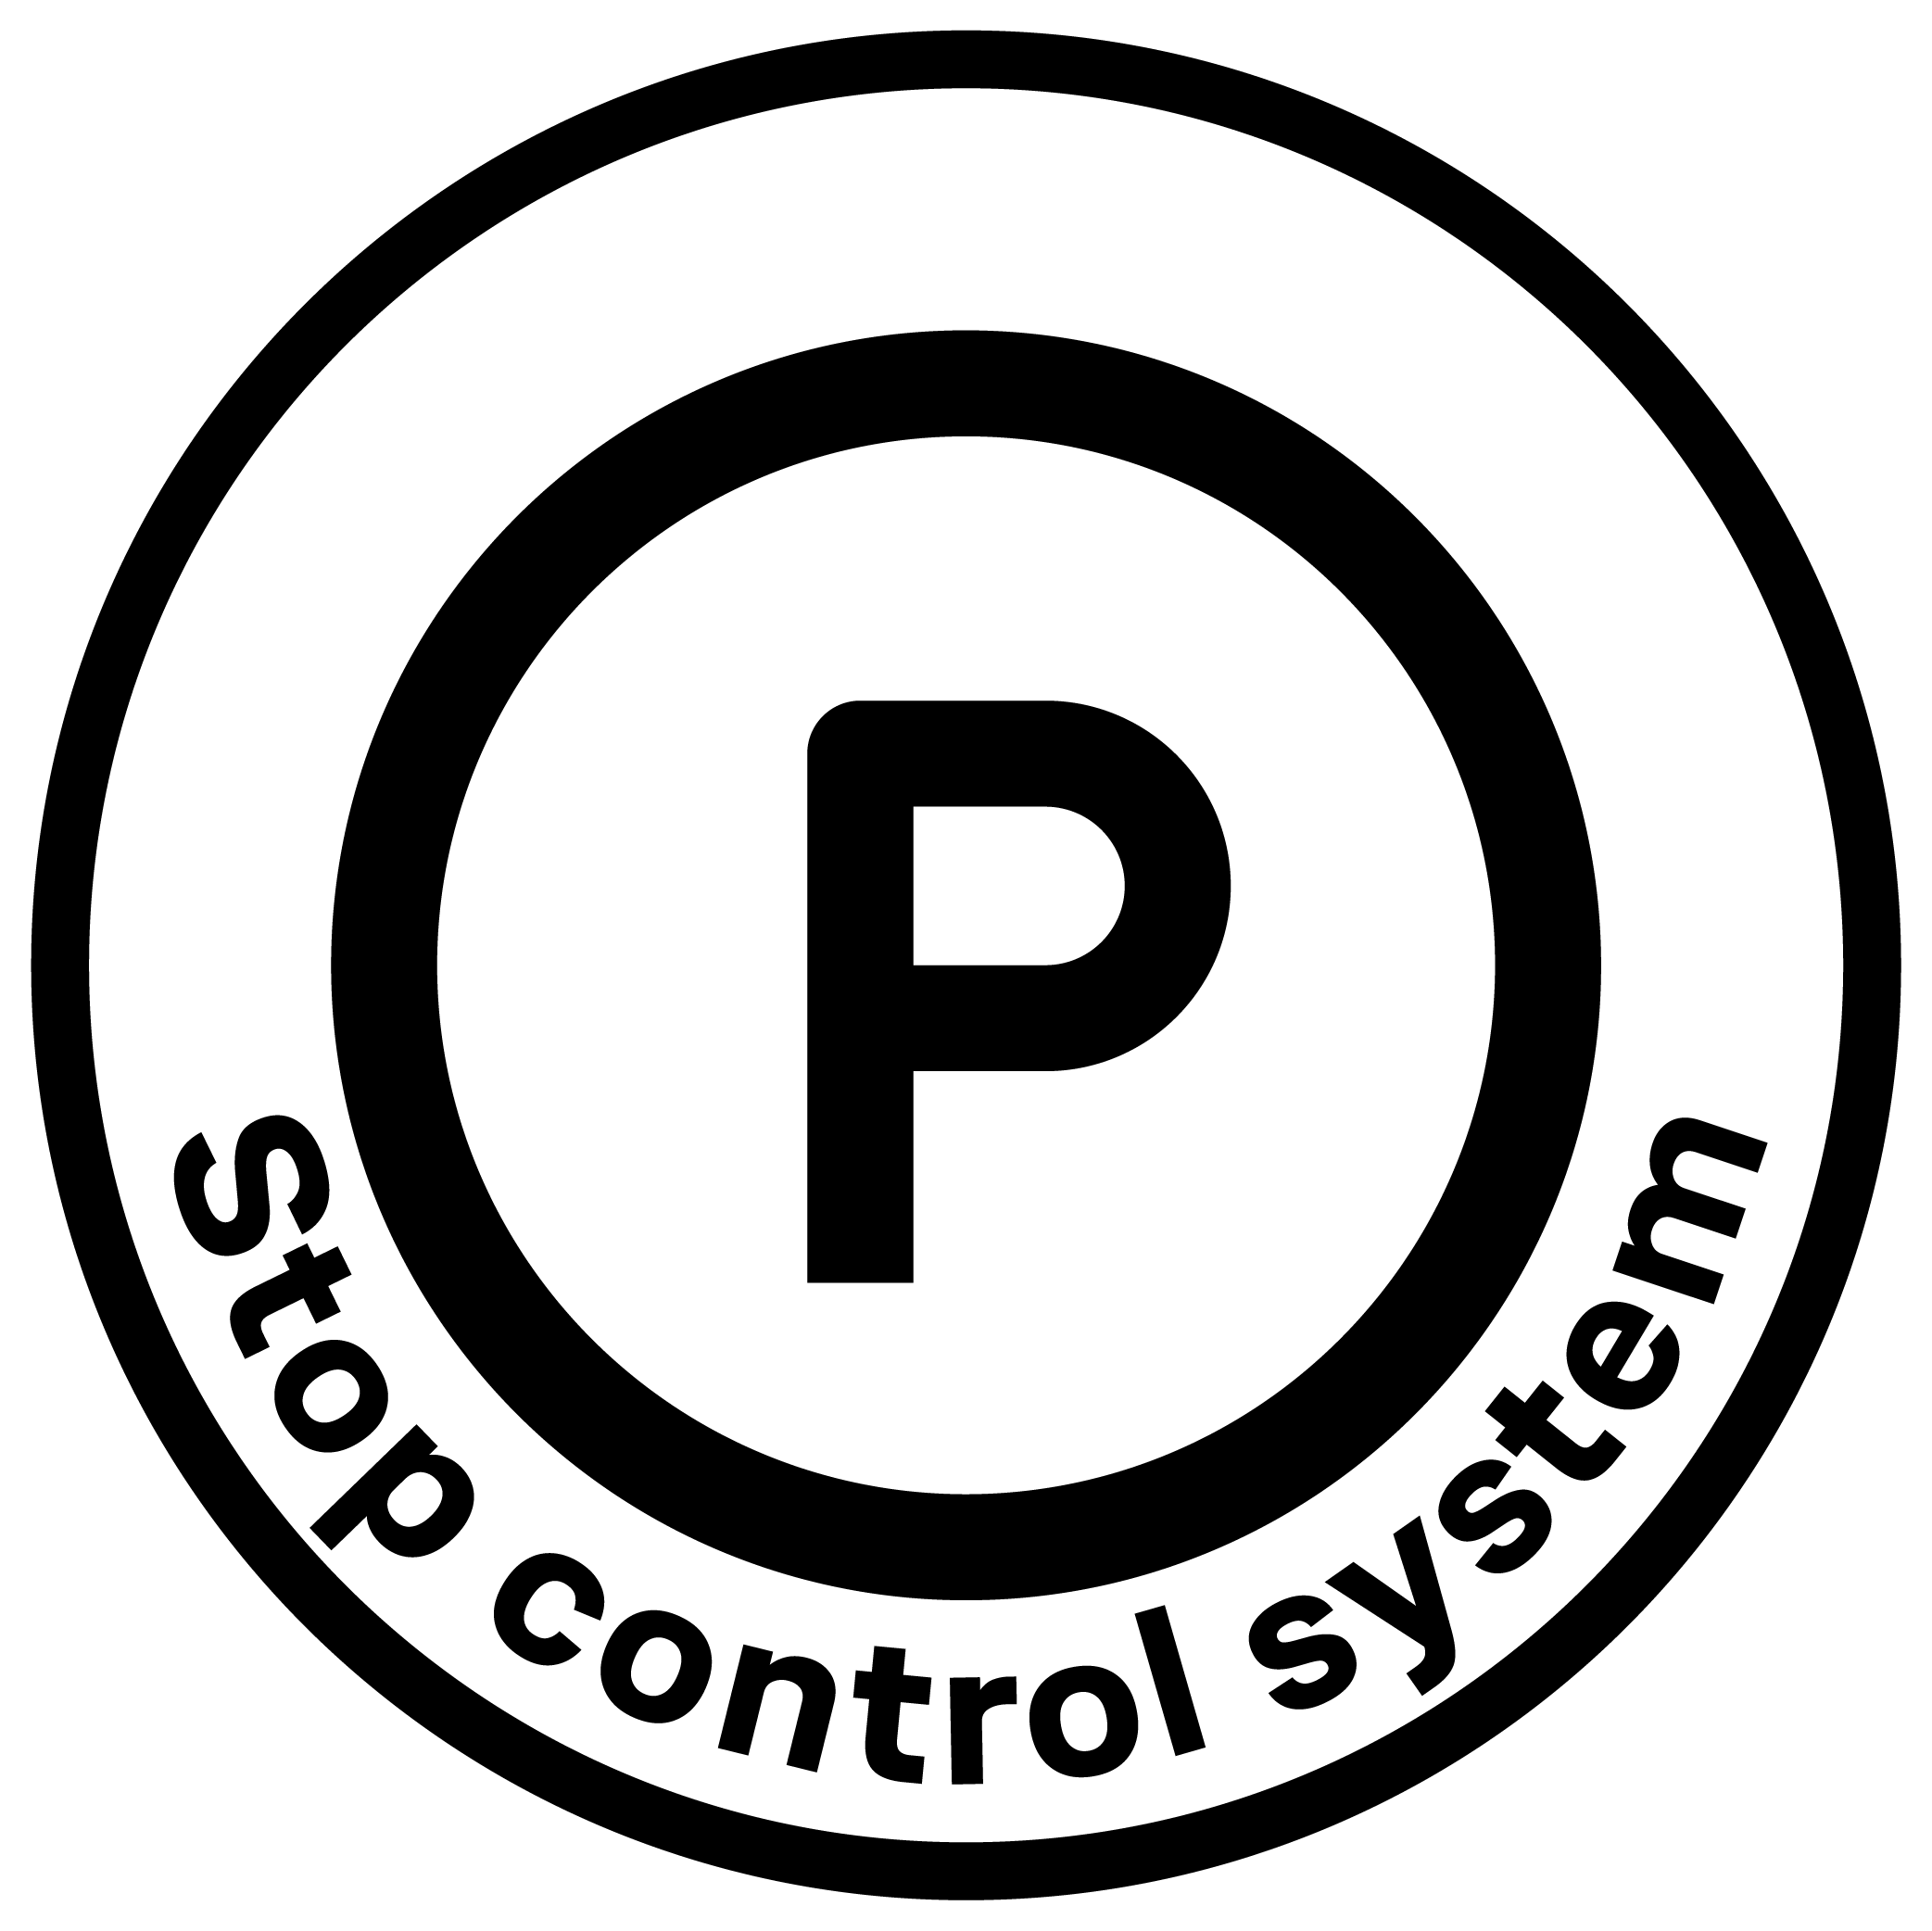 STOP CONTROL SYSTEM